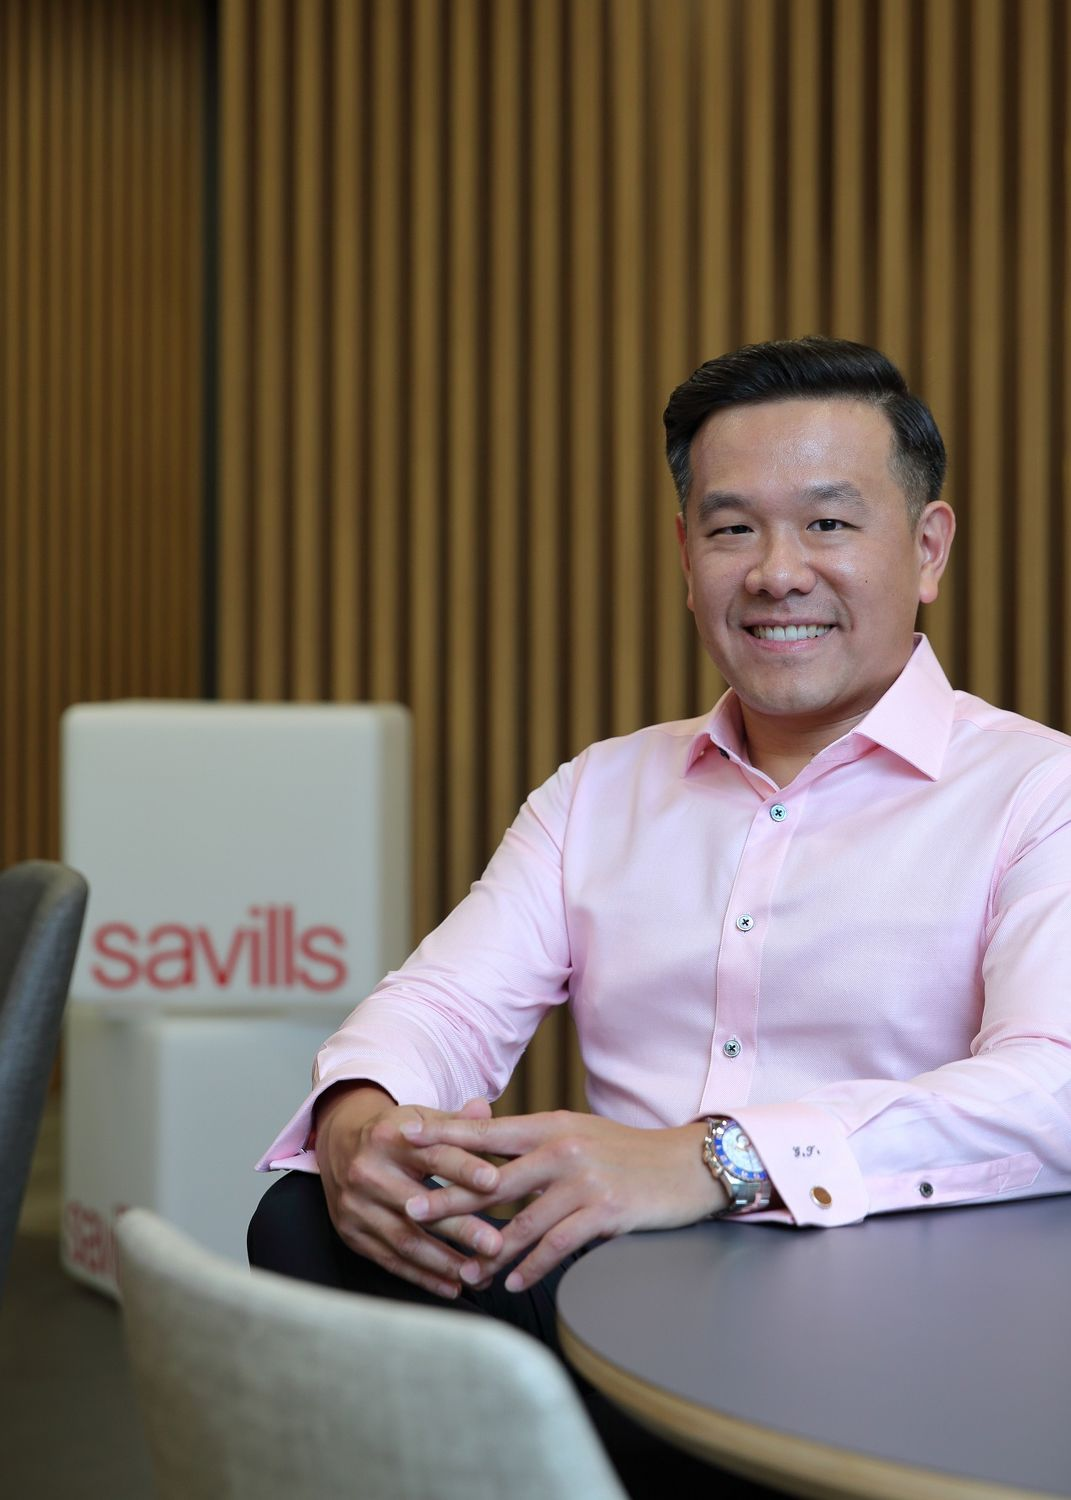 EDGEPROP SINGAPORE - Tan: Even though Covid-19 may have clouded the short-term outlook for the F&B sector, at the end of the day, we are social creatures; people still want to go out and meet their friends for a meal or drinks (Photo: Samuel Isaac Chua/EdgeProp Singapore)